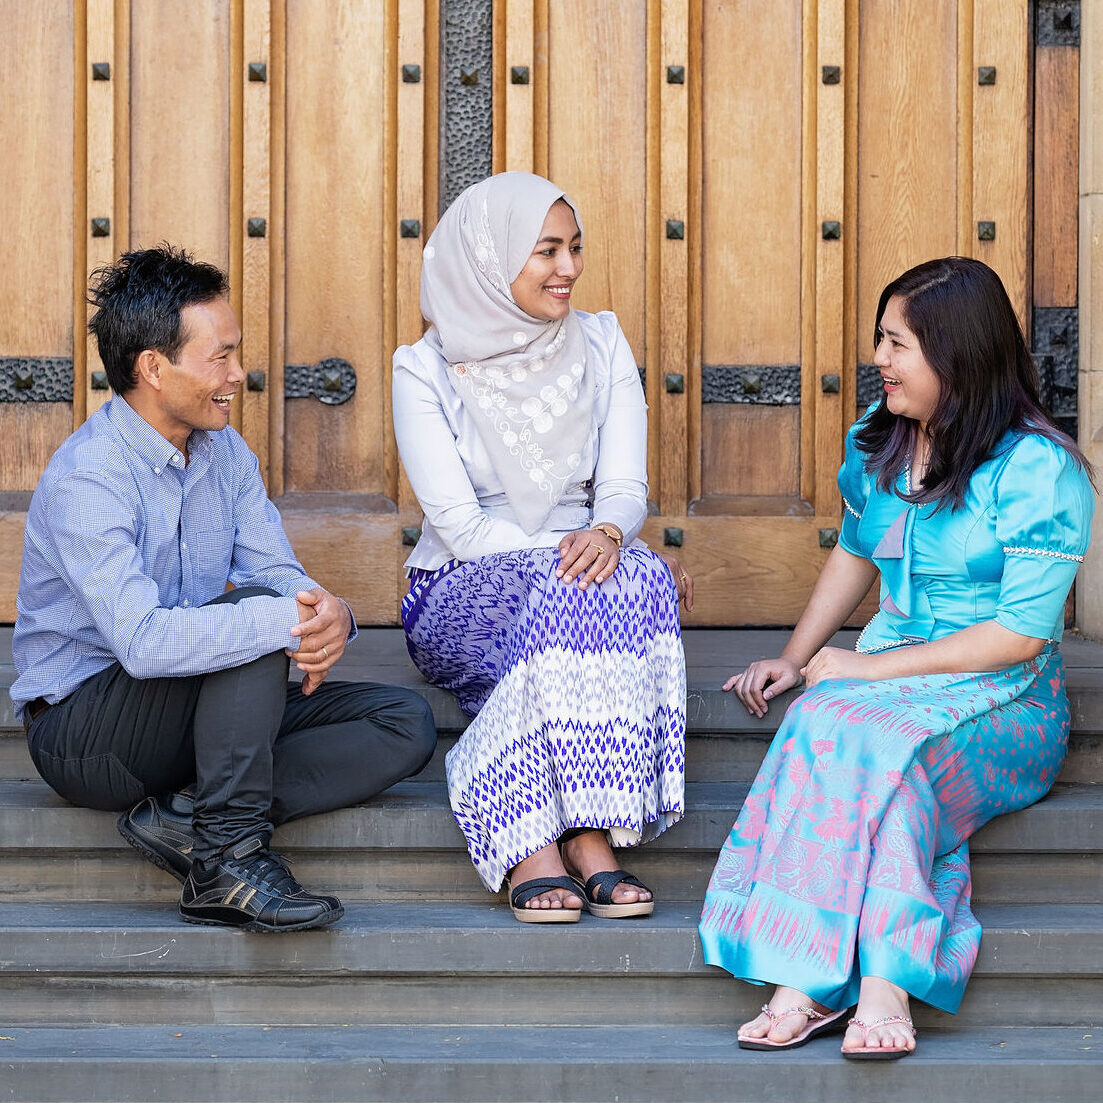 Three people sitting on steps and having a chat